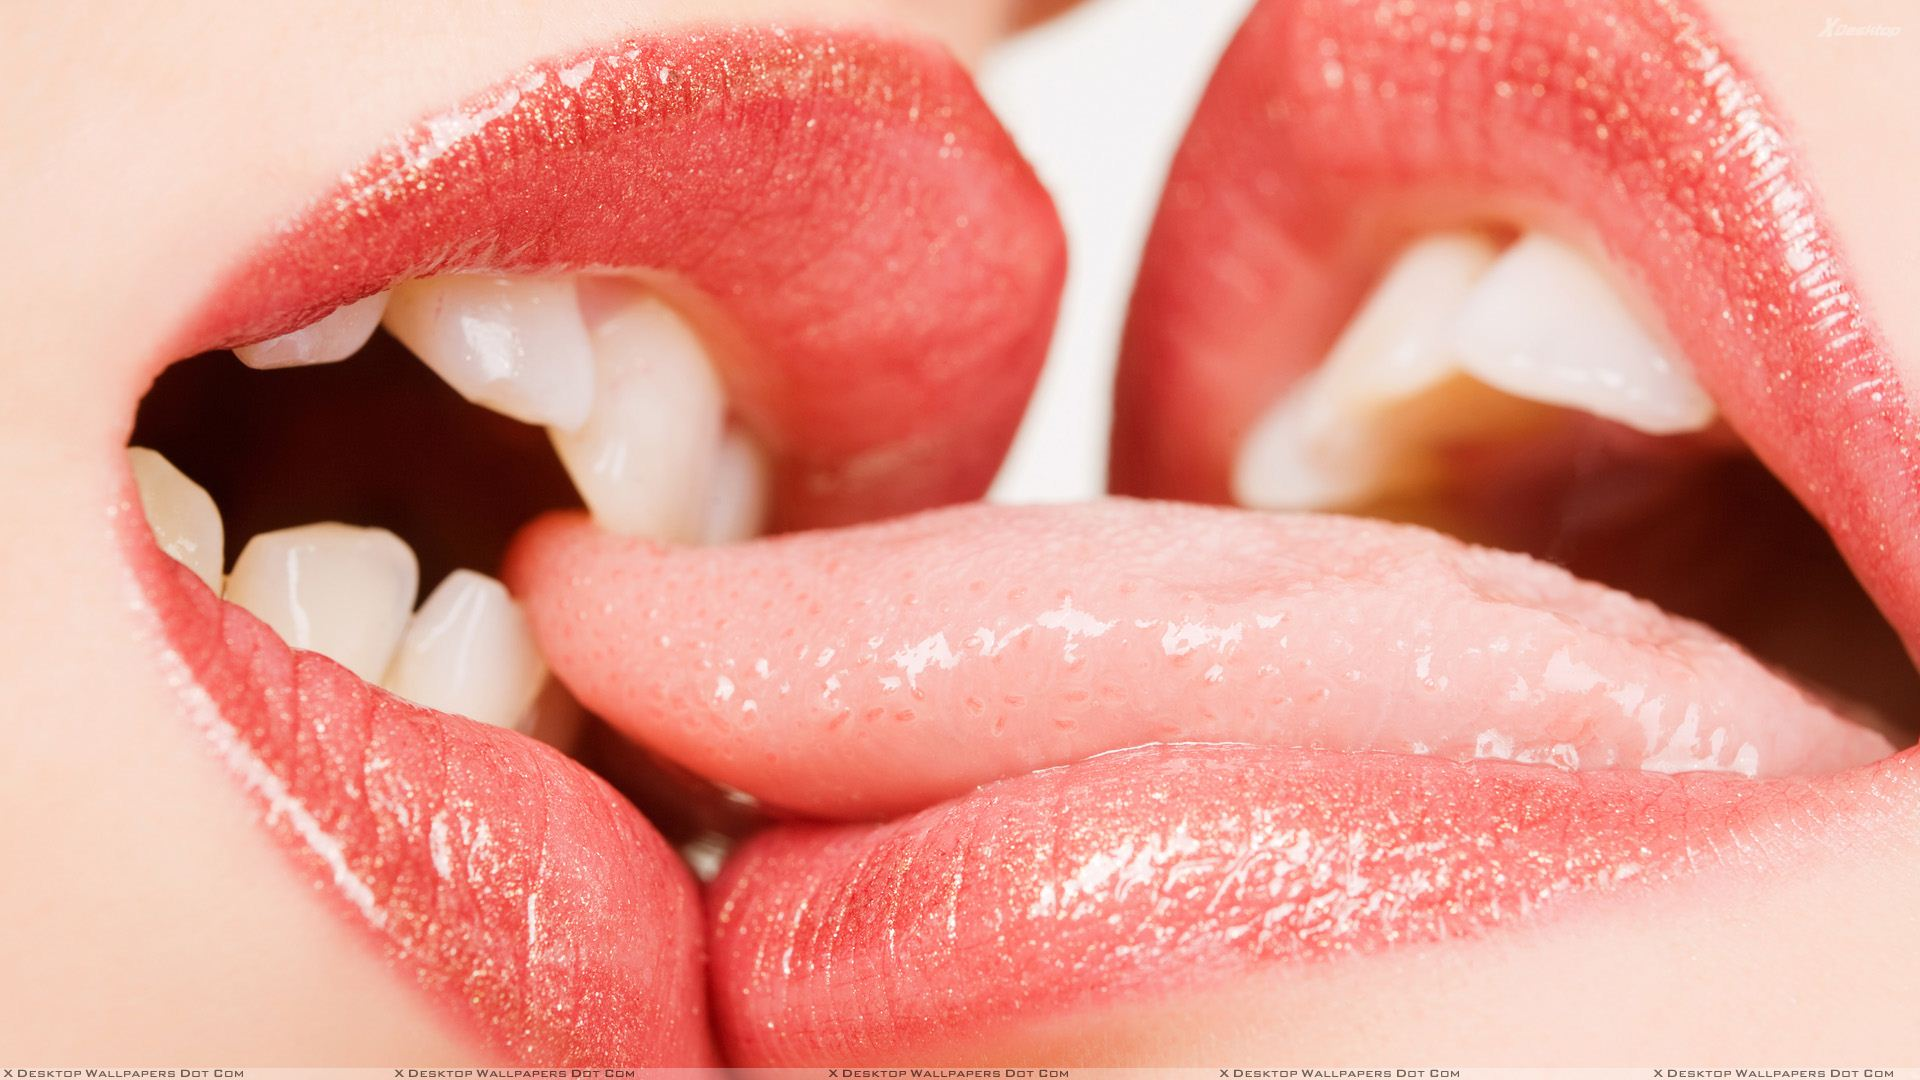 lips | Red Glossy Lips Kissing Wallpaper | One Last Kiss